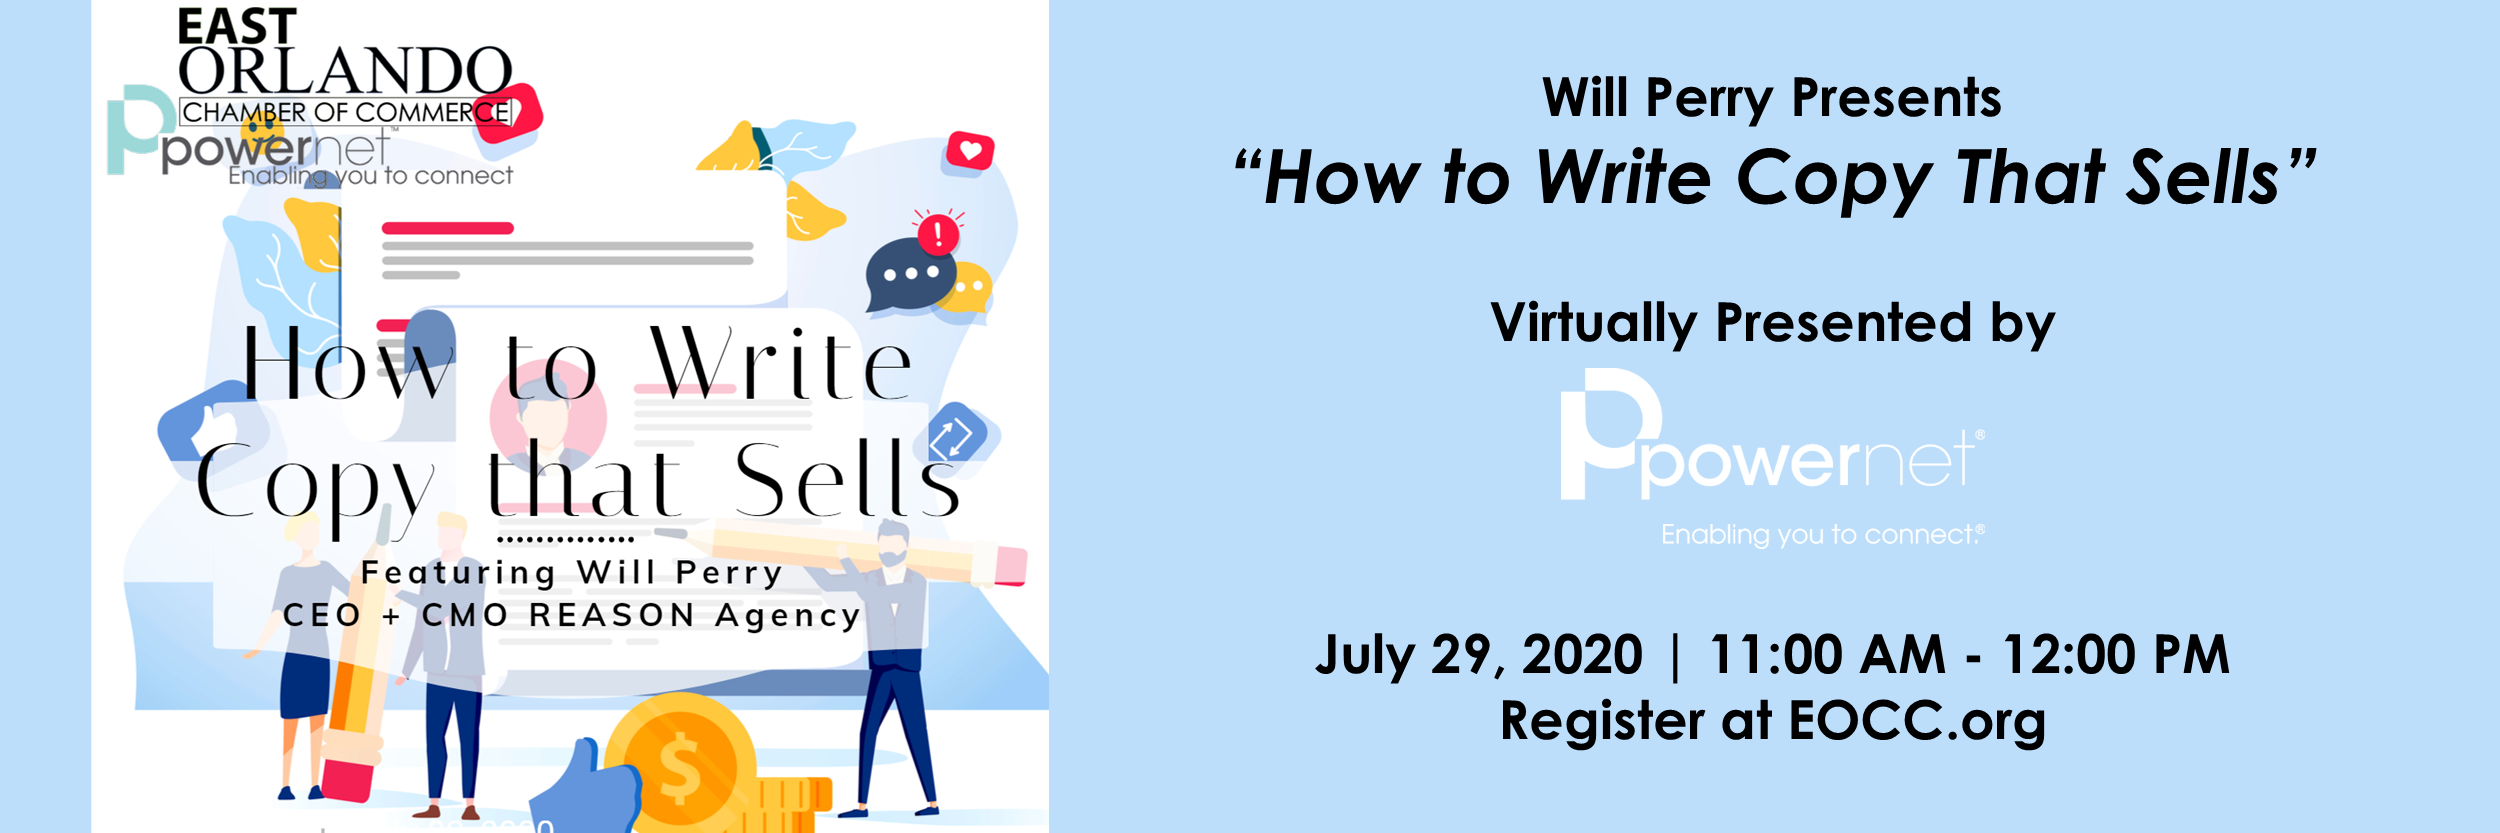 How to Write Copy That Sells July 2020